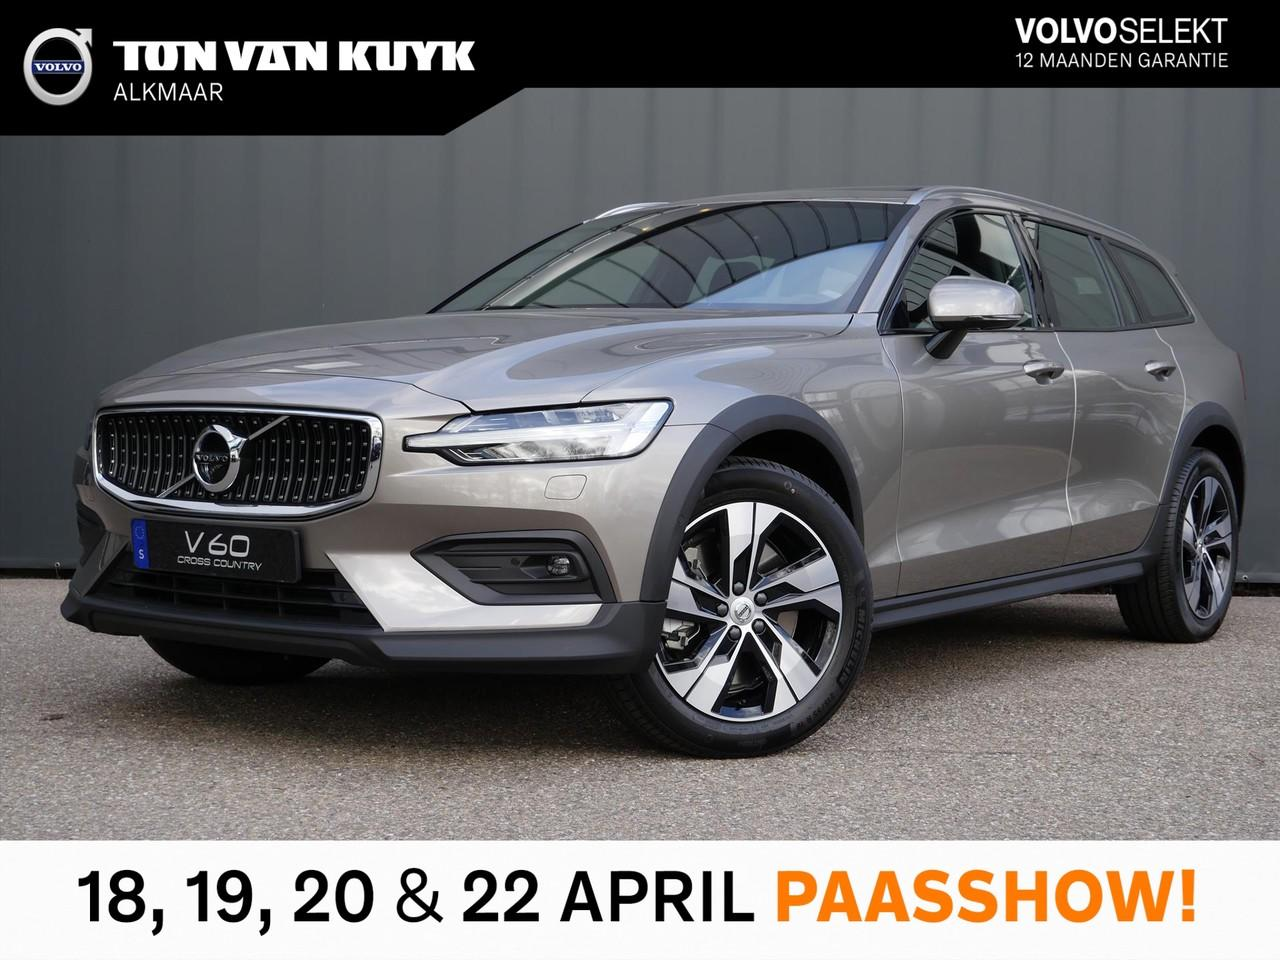 Volvo V60 cross country New d4 190pk awd geartr. intro edition / luxury / audio